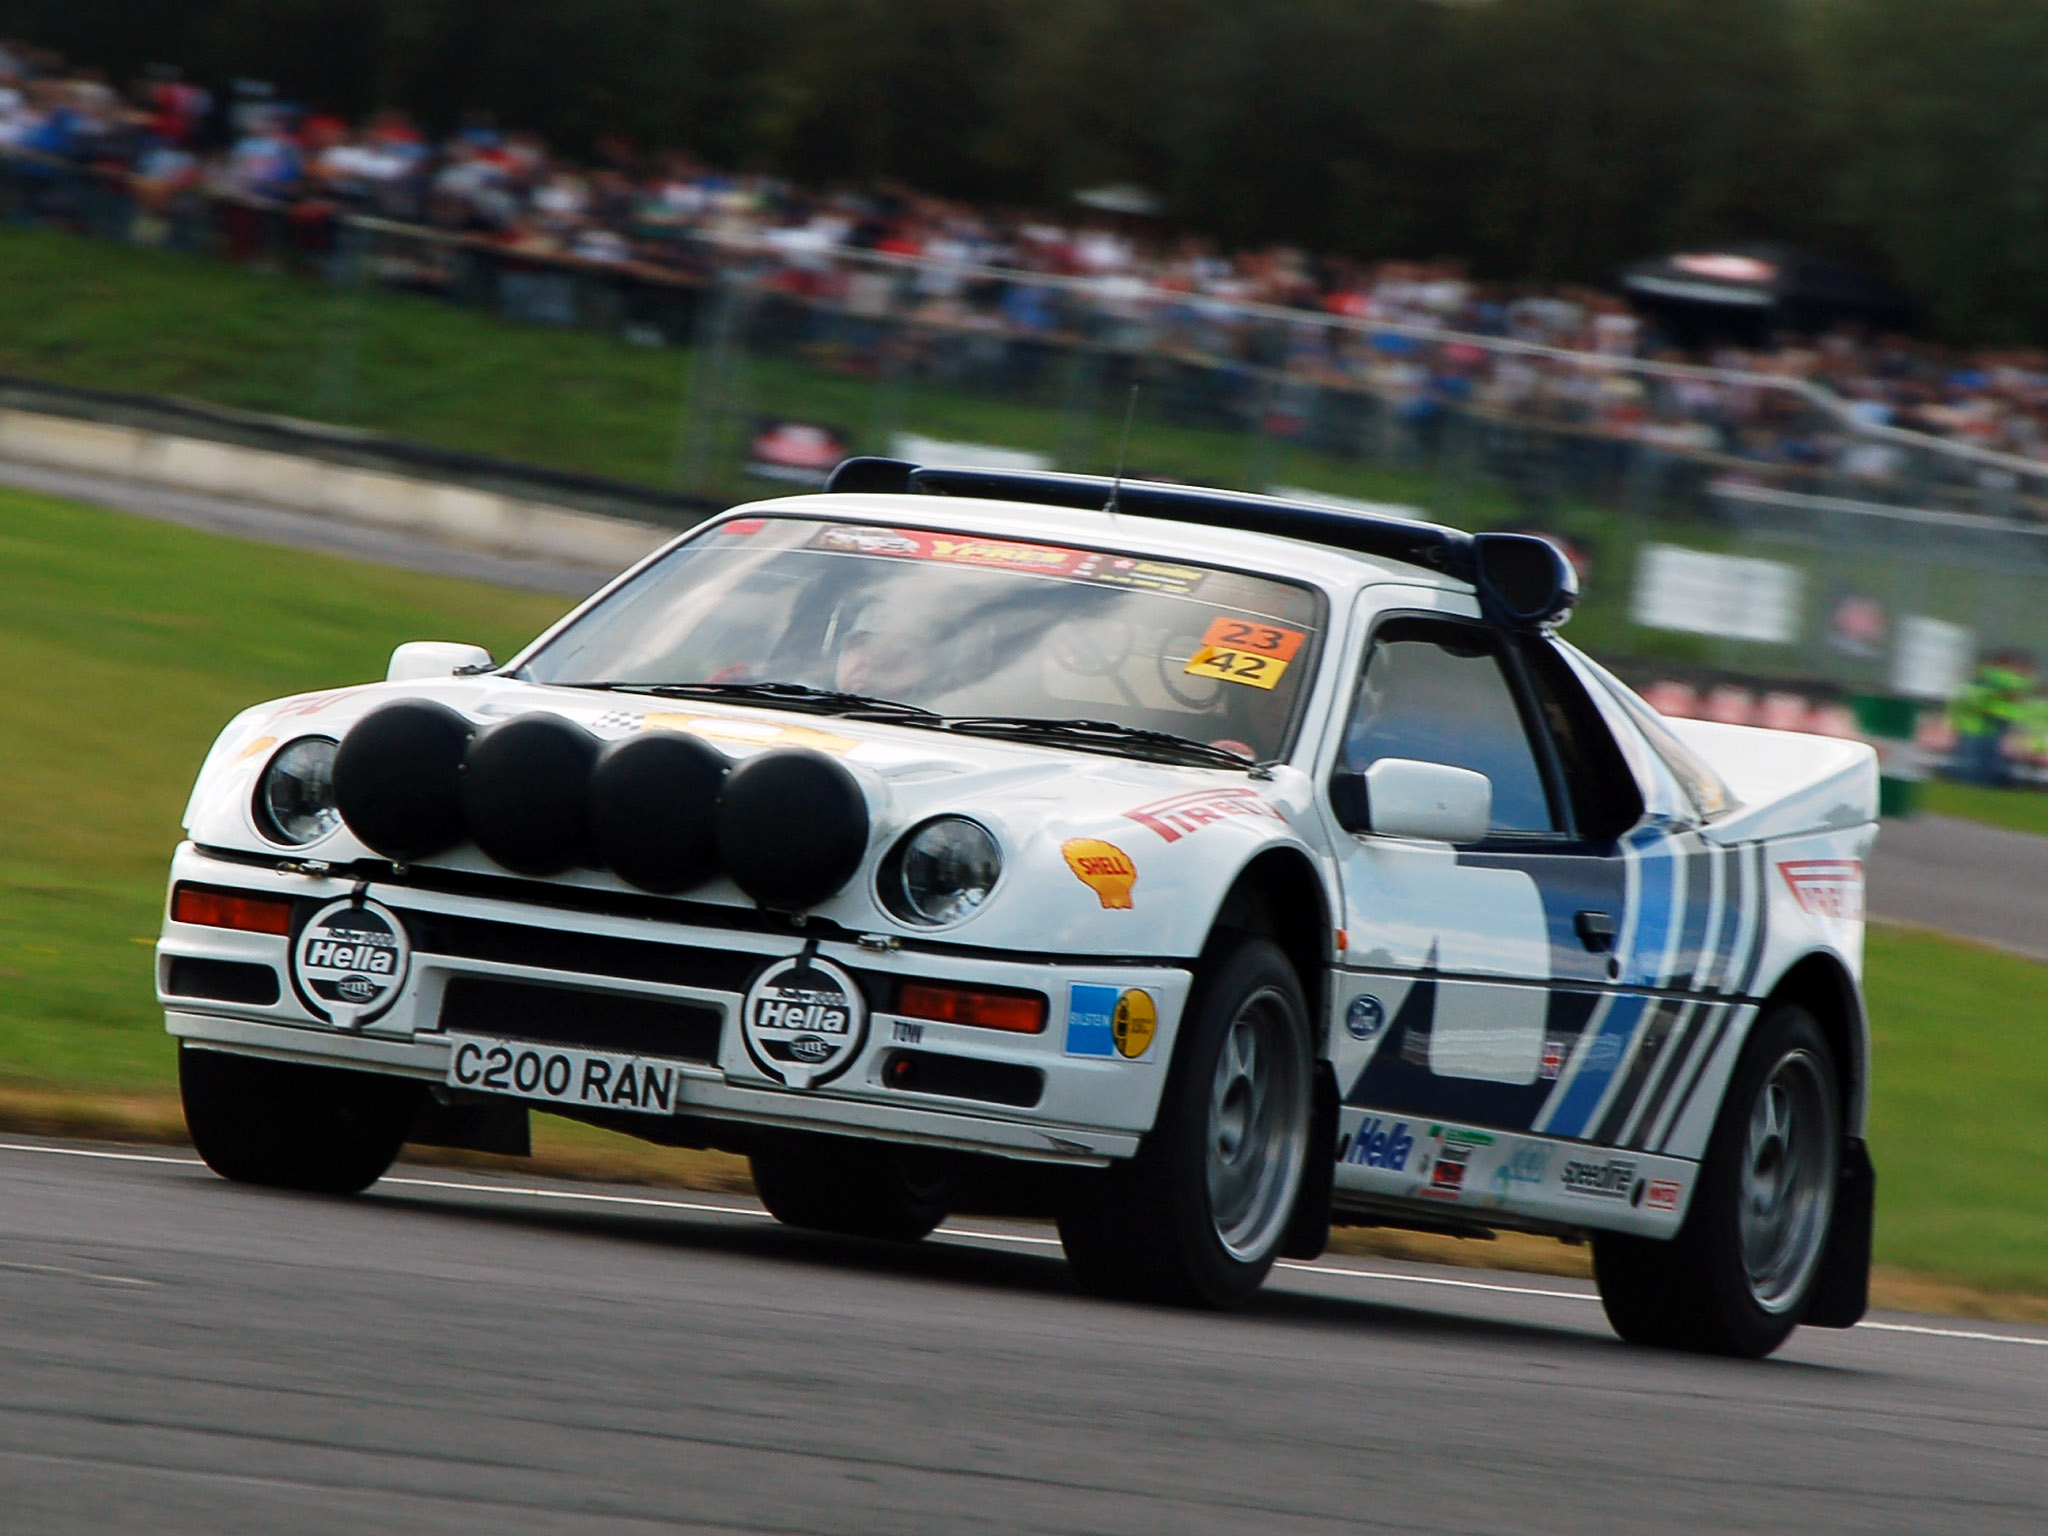 Group B Rally Car Wallpaper Images Pictures   Becuo 2048x1536